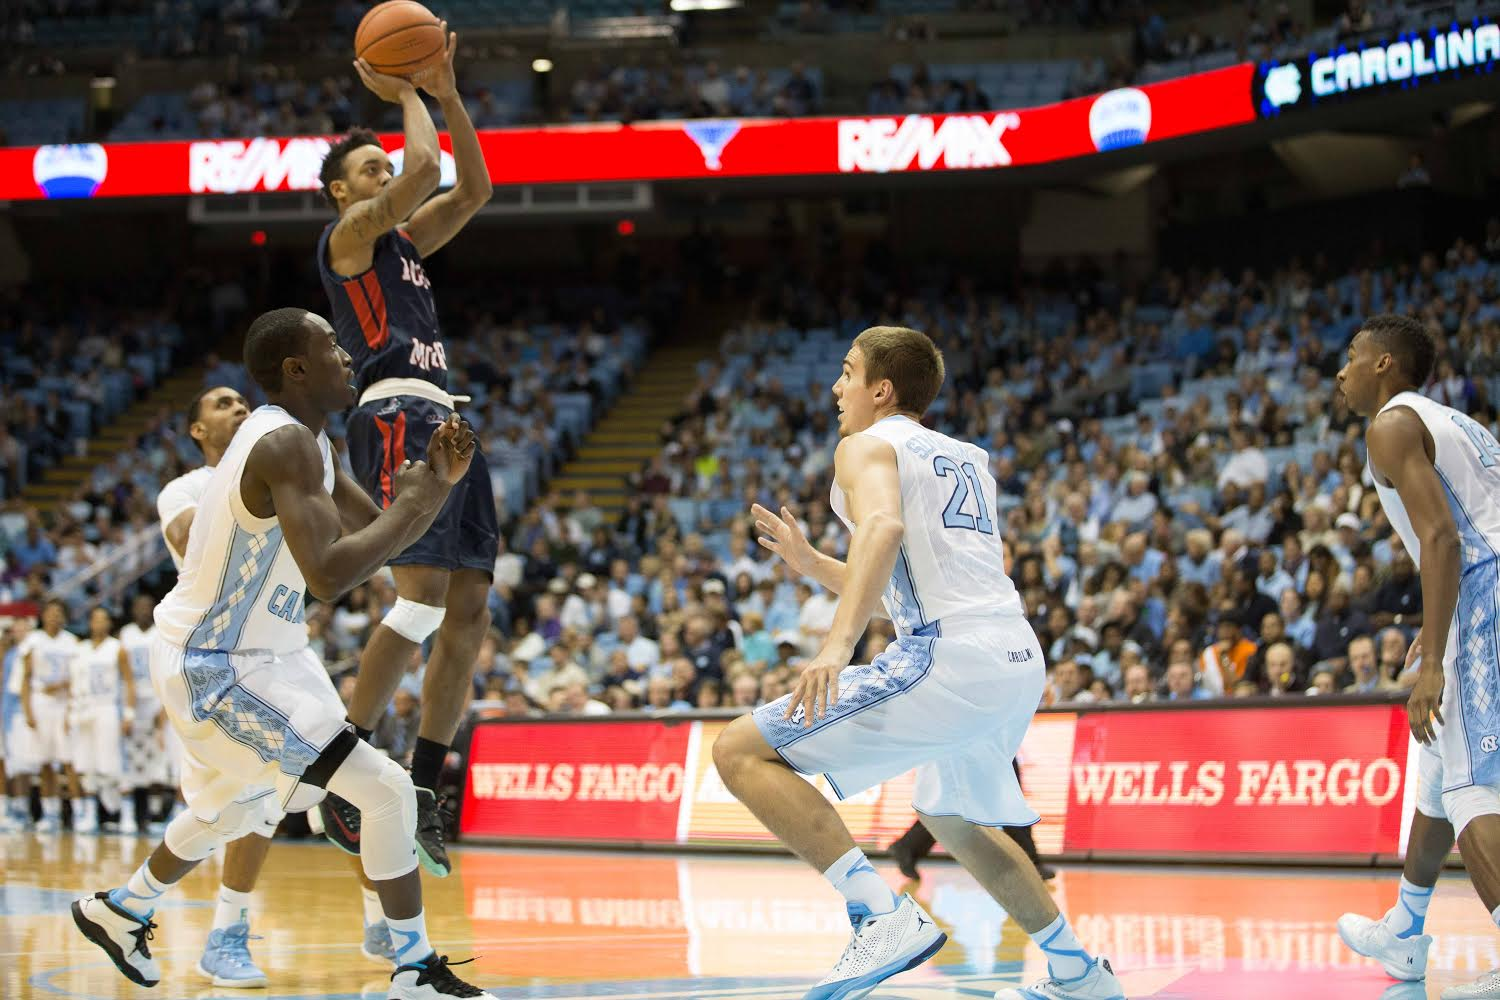 Marcquise Reed takes a jumper from the top of the key at the Dean E. Smith Center against North Carolina Sunday night.